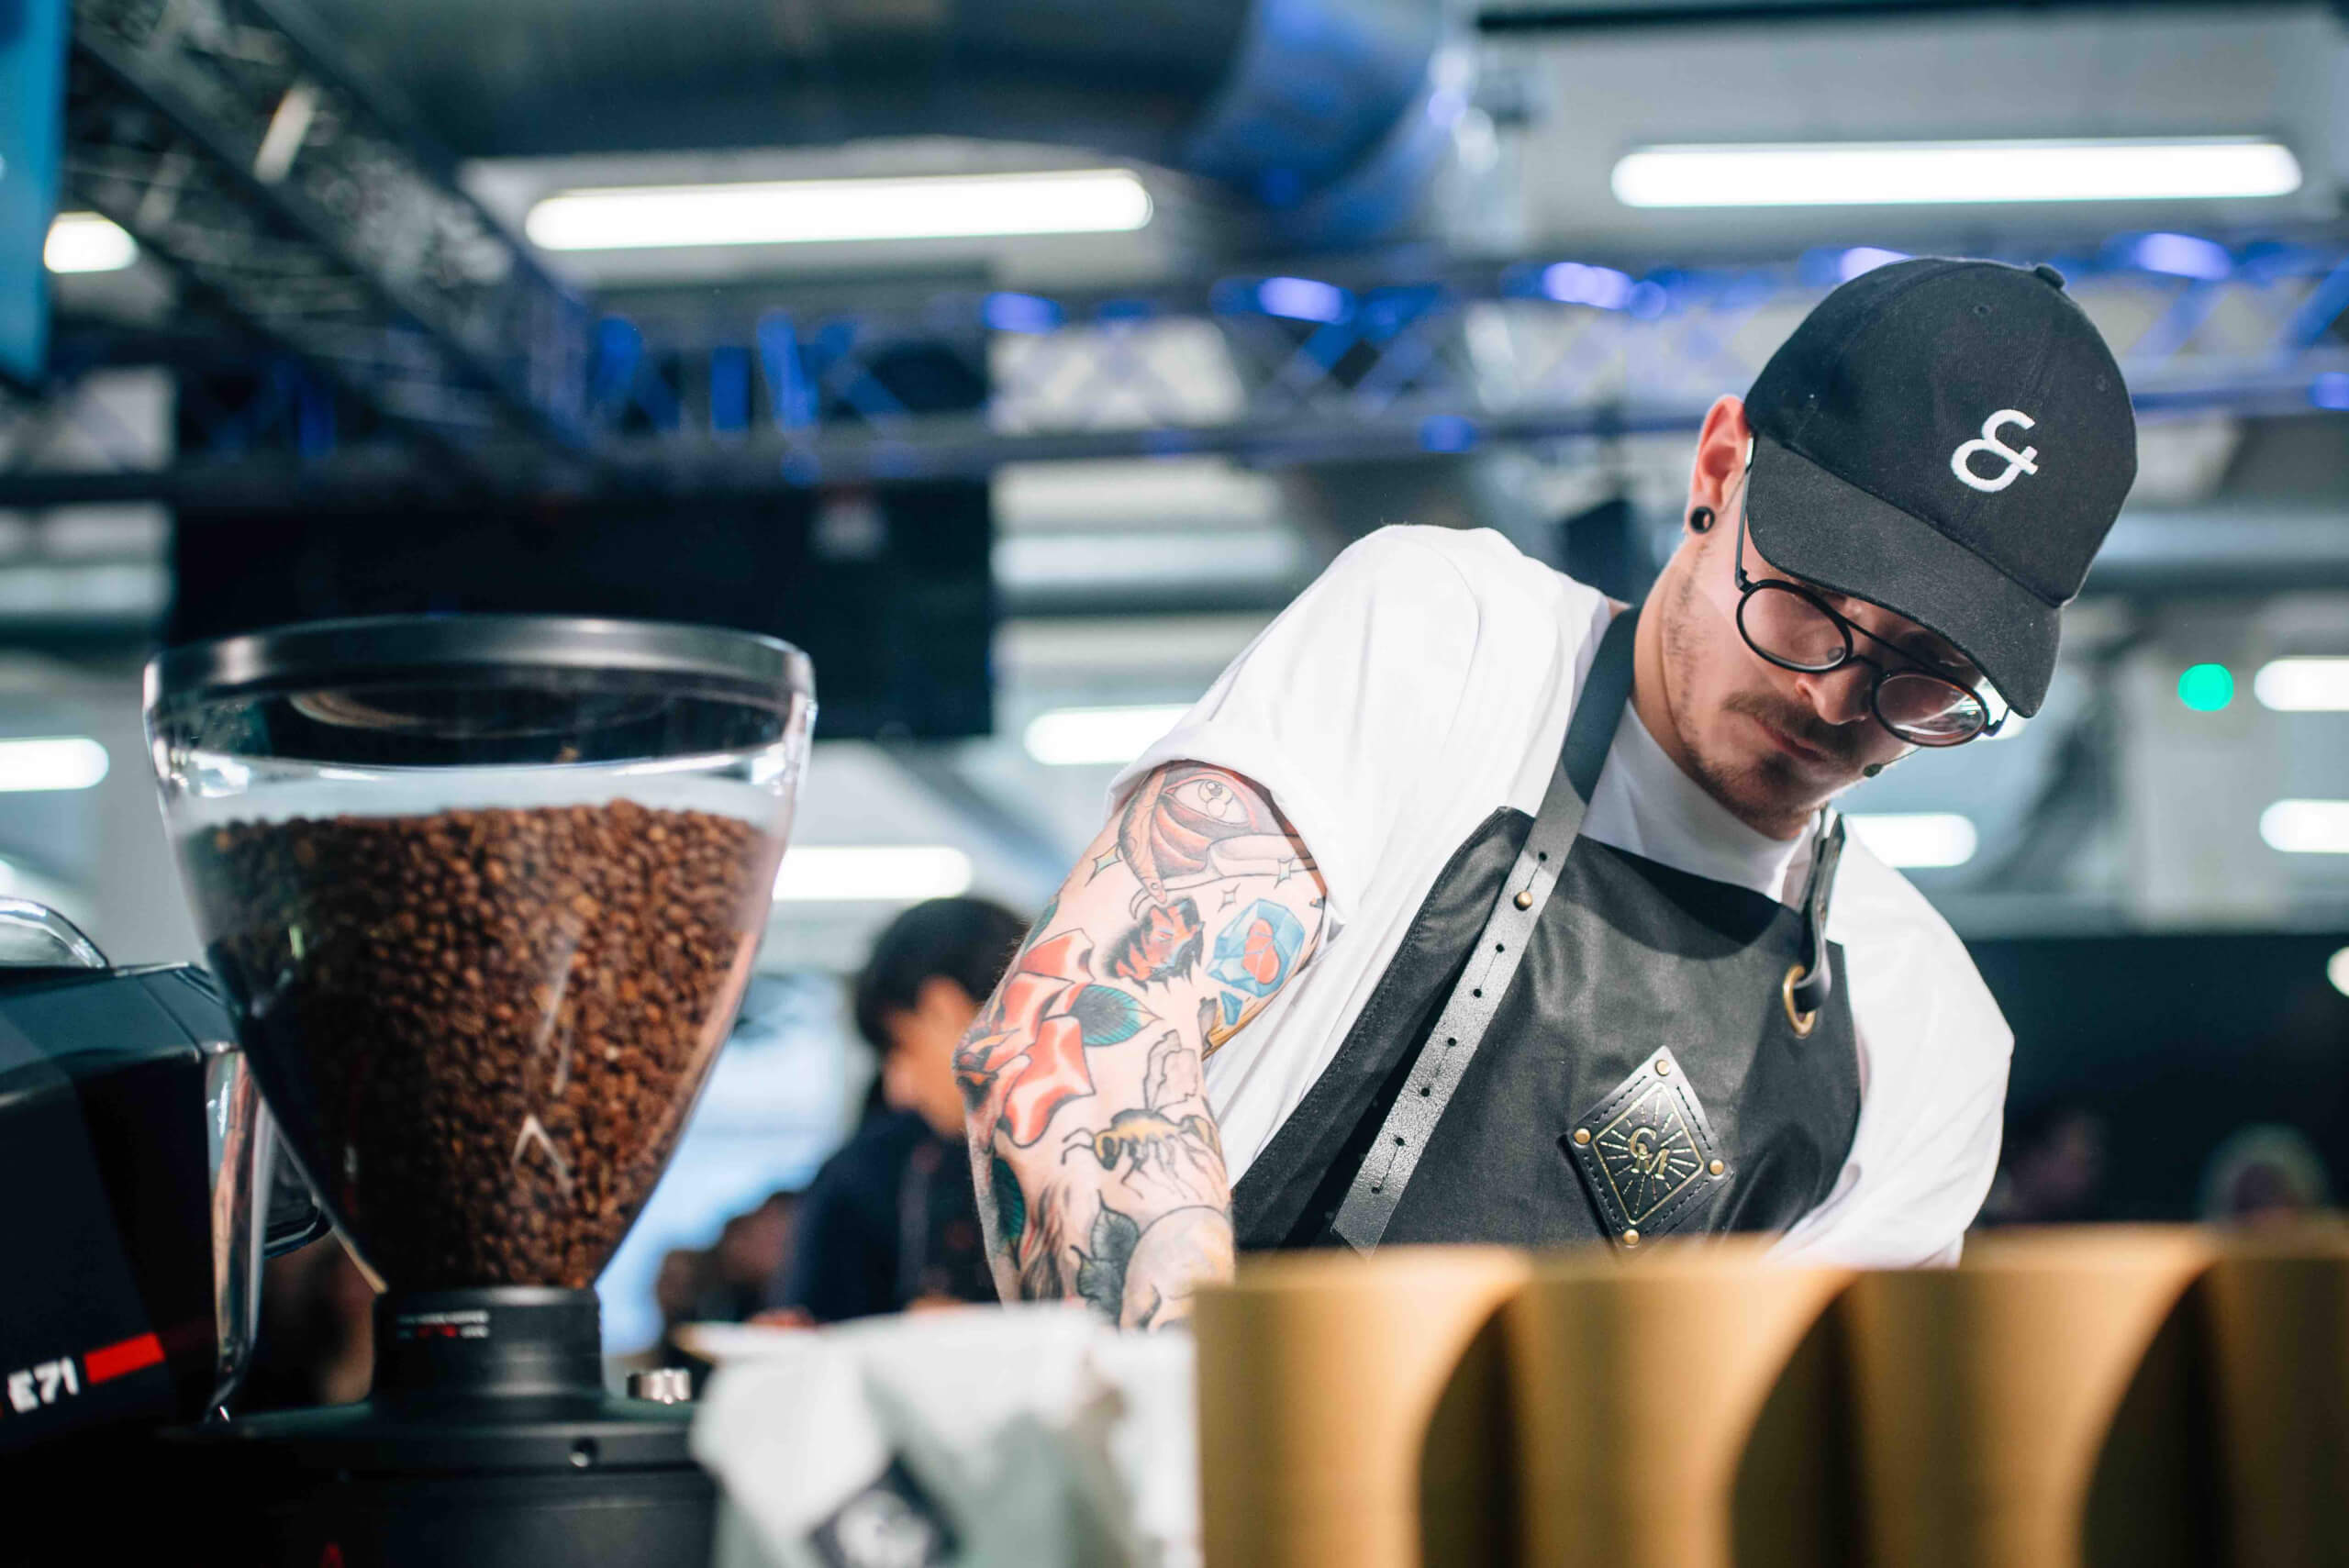 About Time You Discovered The London Coffee Festival 2018